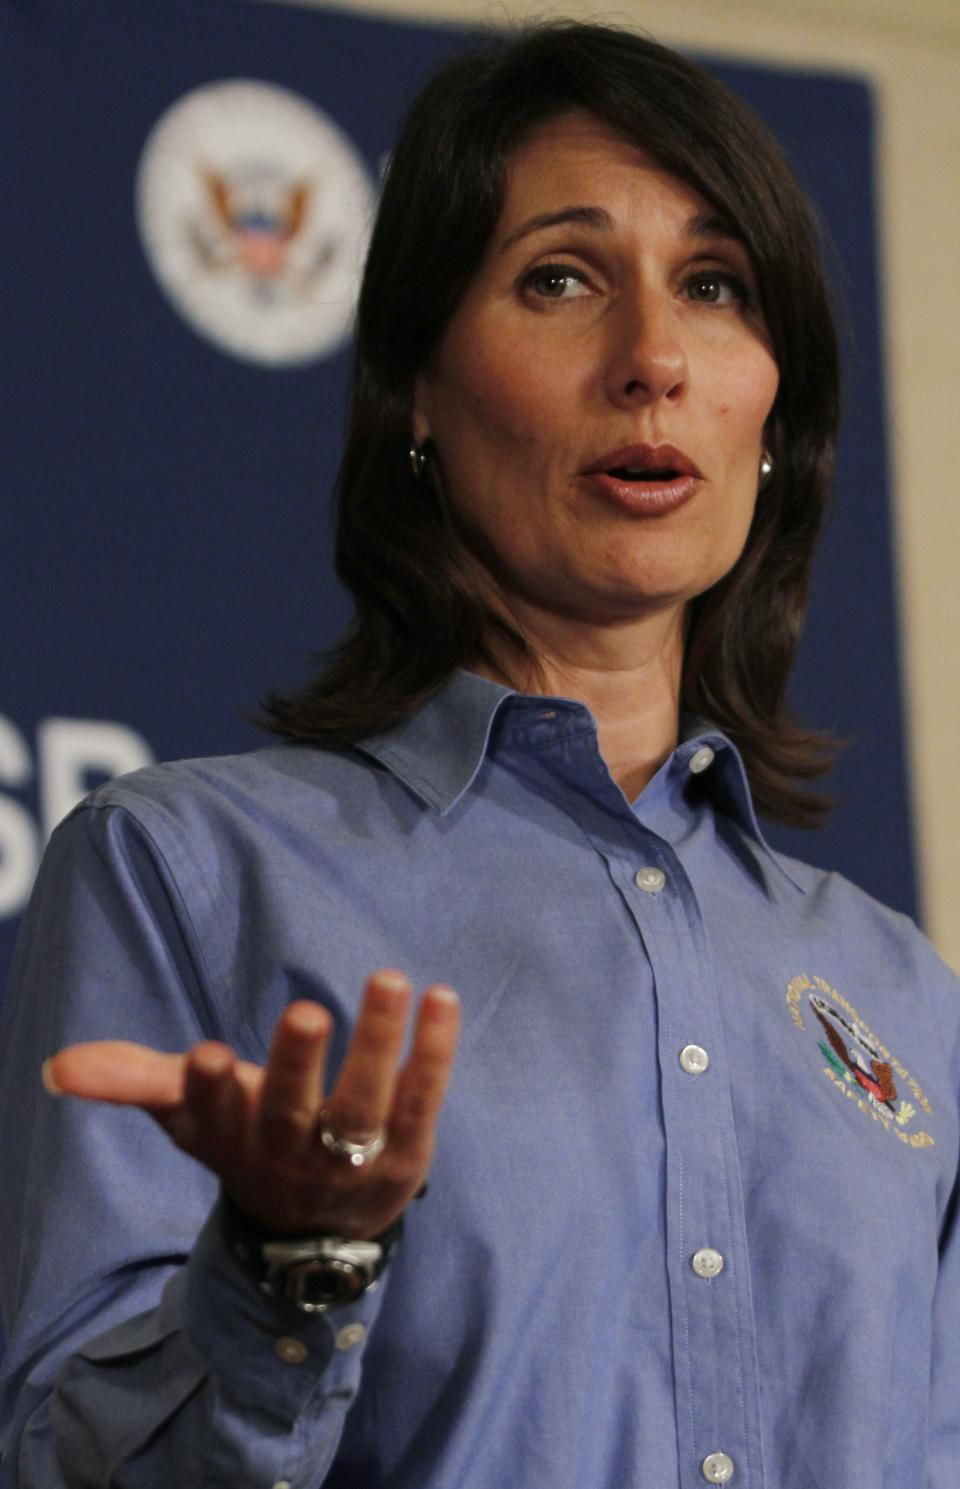 Deborah Hersman of the National Transportation Safety Board speaks at a news conference , Monday, July 8, 2013 in South San Francisco, Calif. An Asiana Airlines Boeing 777 crashed upon landing Saturday, July 6, at San Francisco International Airport, and two of the 307 passengers aboard were killed. (AP Photo/George Nikitin)